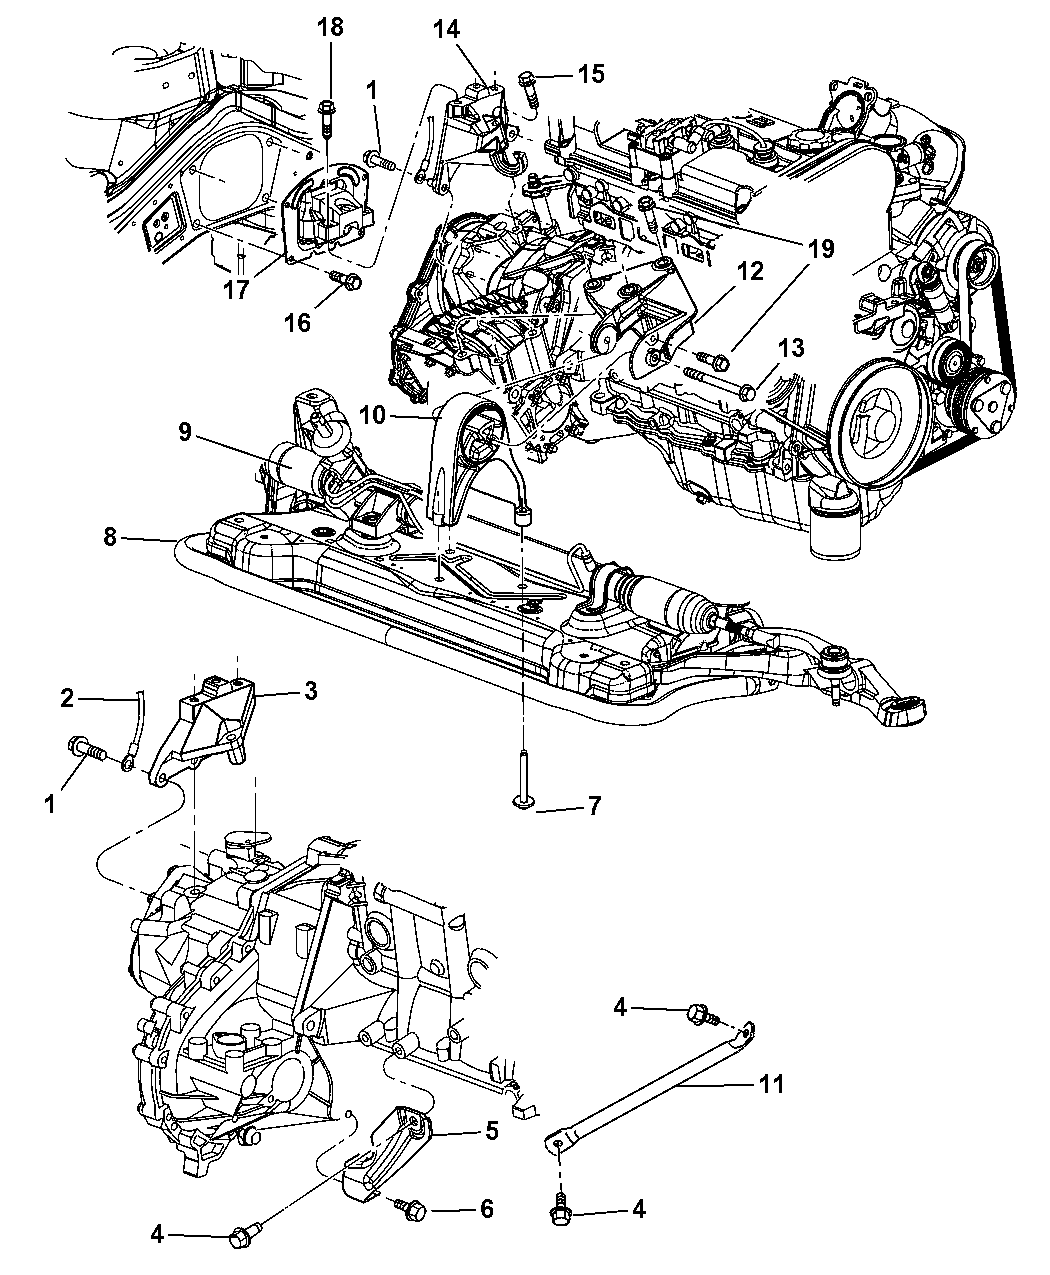 2006 dodge stratus engine diagram 2006 dodge stratus transmission mounts, rear mounts and ... #12